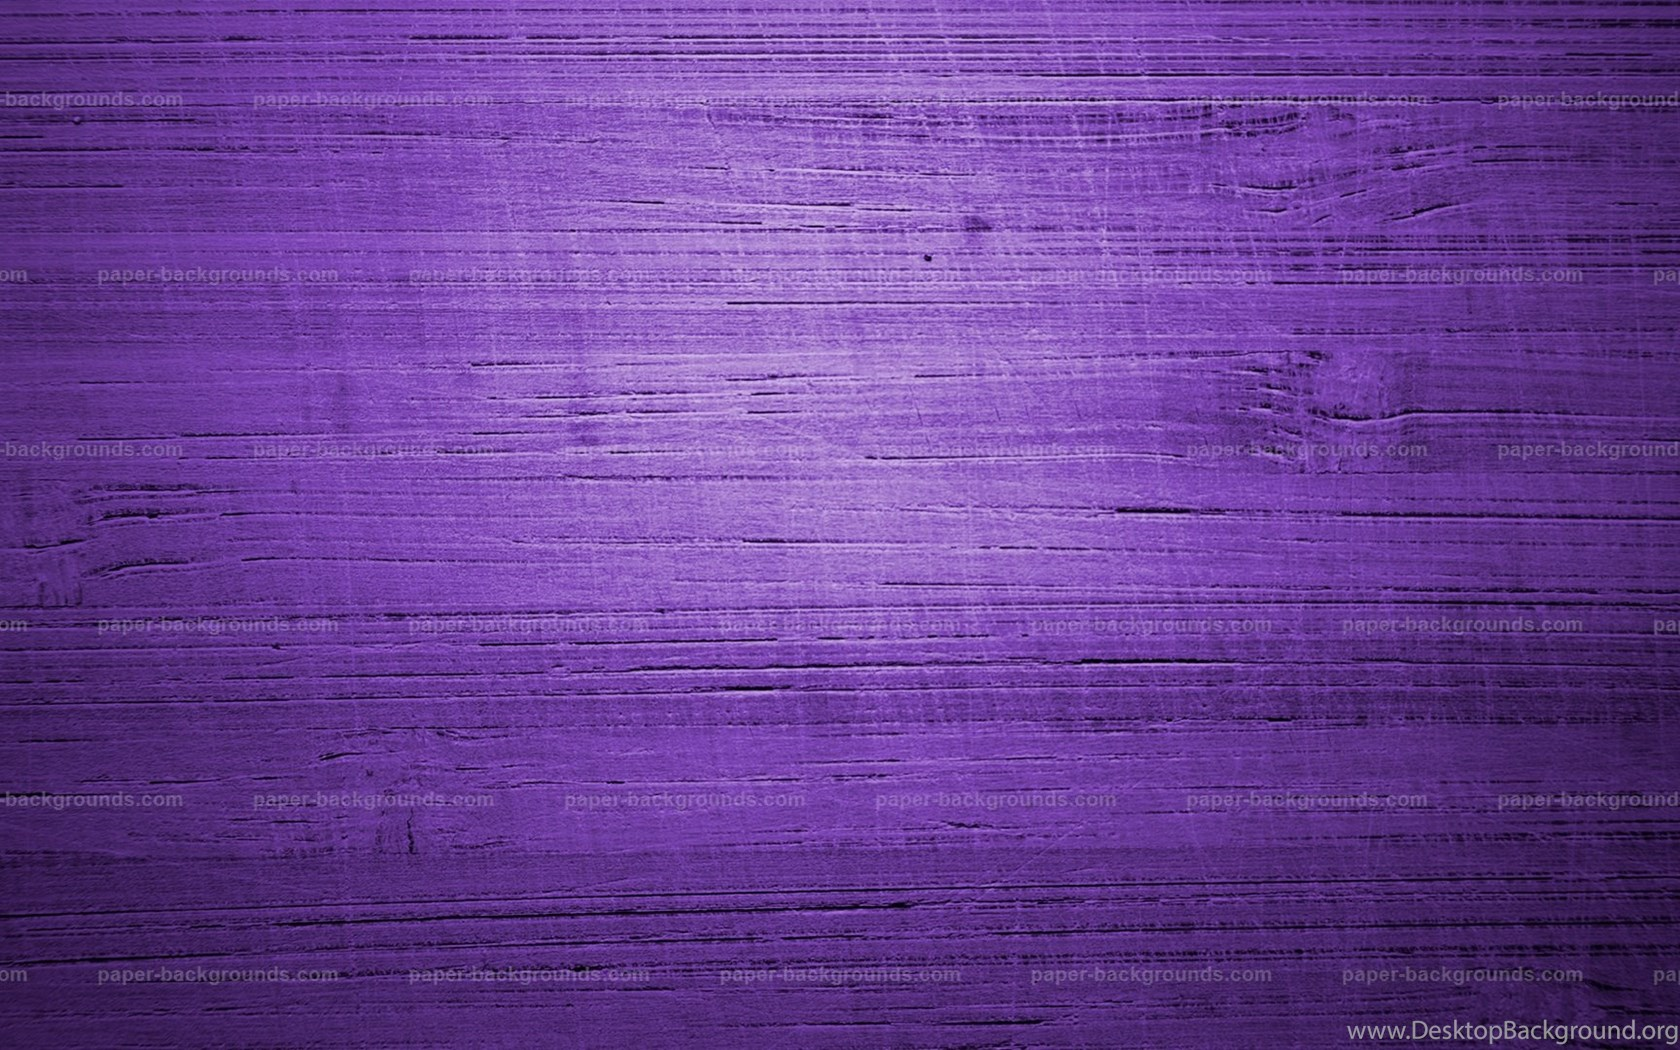 purple wood texture backgrounds hd paper backgrounds